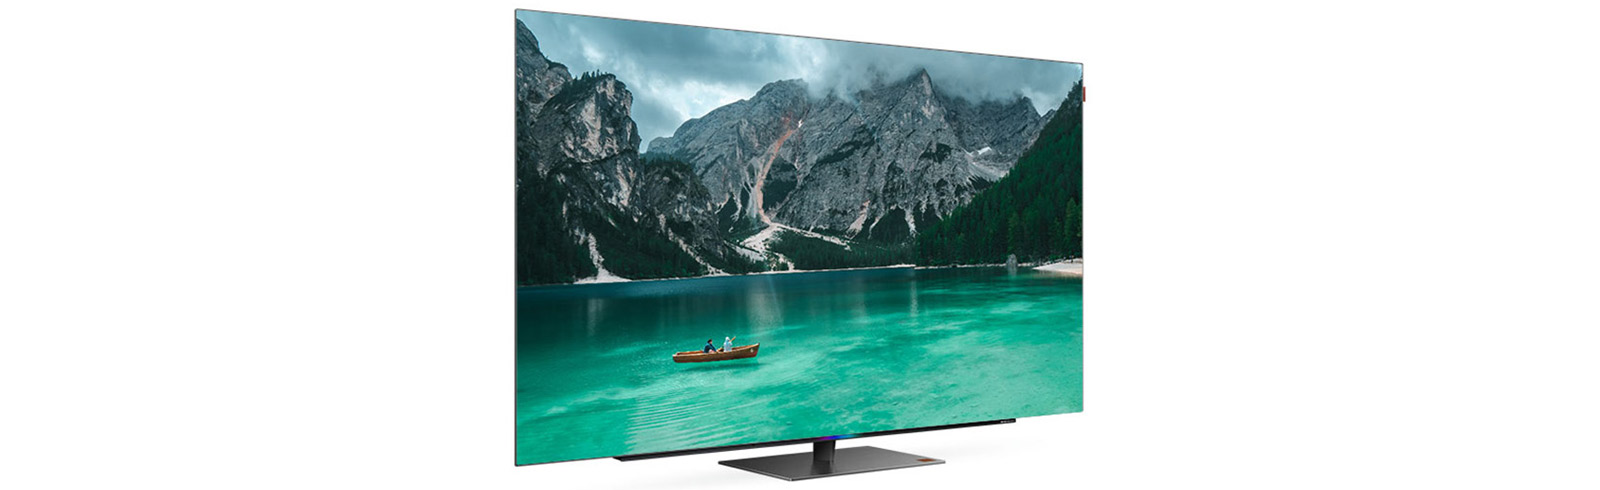 2021 Skyworth S82 4K OLED TVs - specifications and features